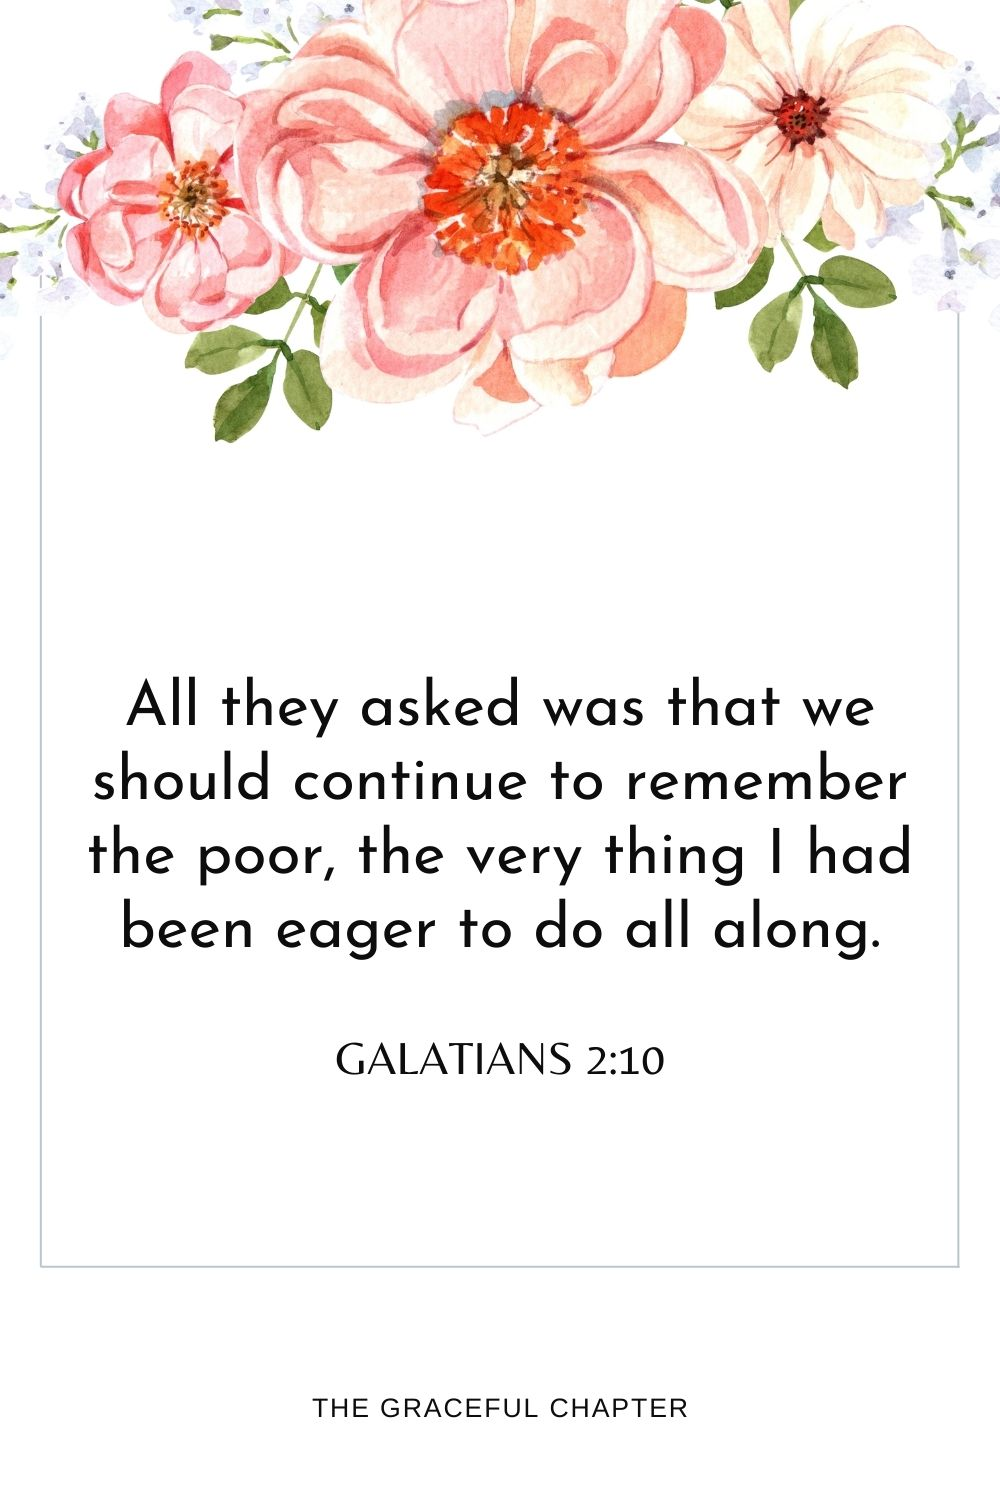 All they asked was that we should continue to remember the poor,the very thing I had been eager to do all along. Galatians 2:10